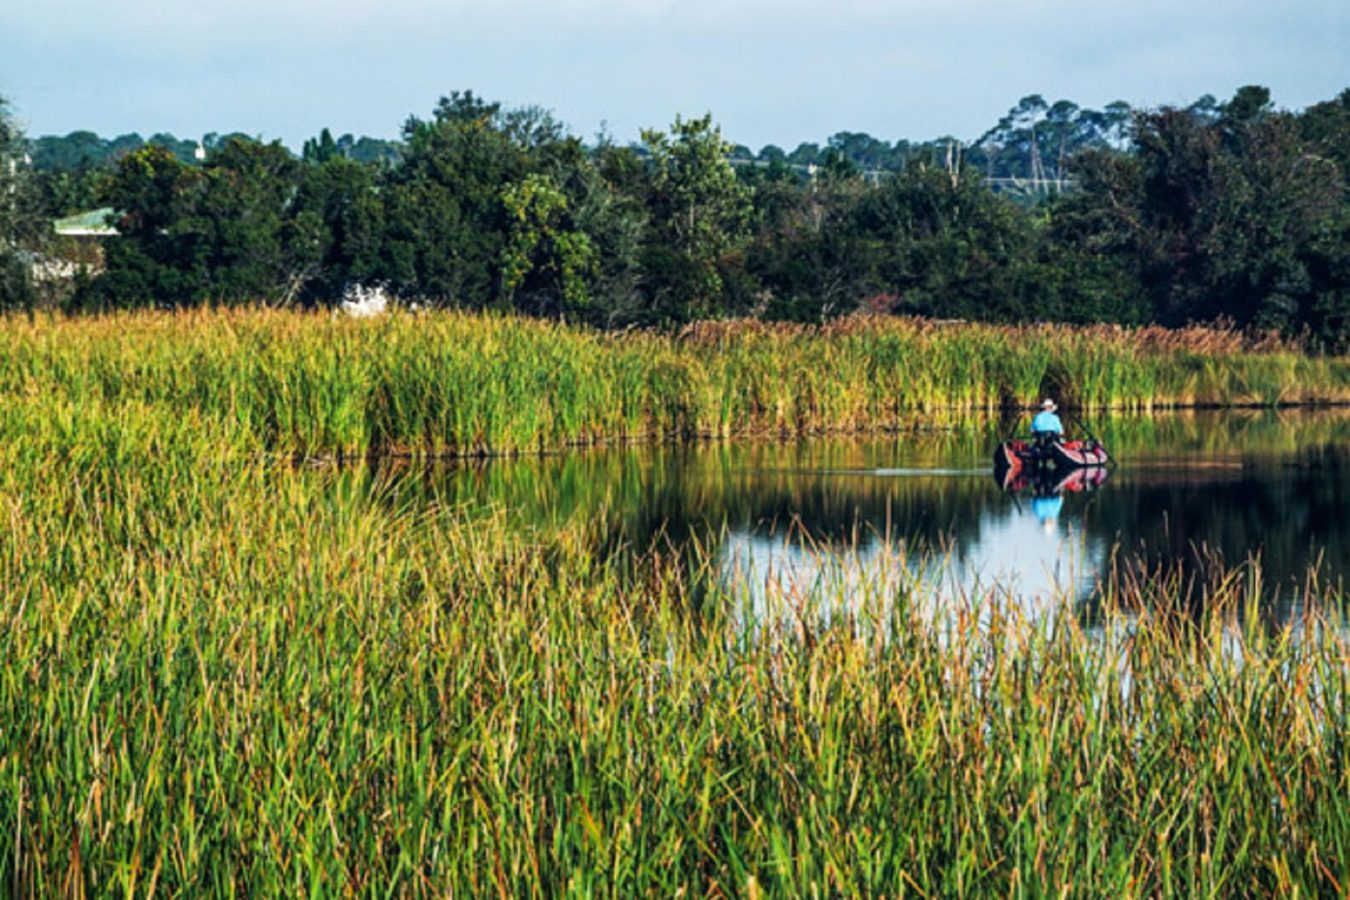 Fishing in the Grasses